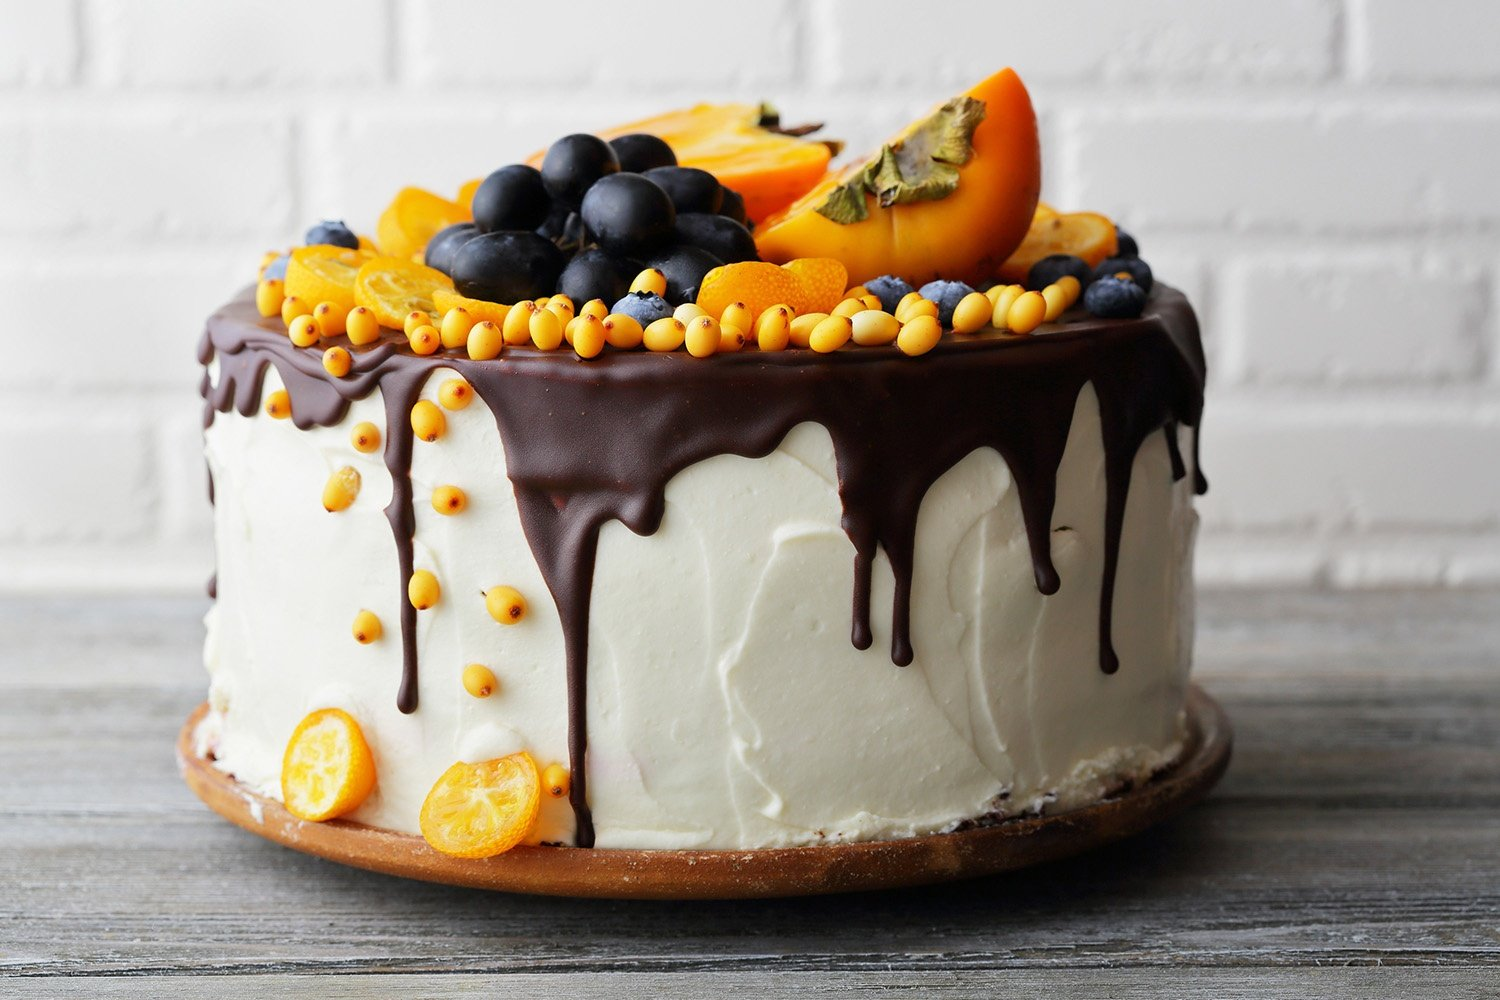 Cake with fruits and cream